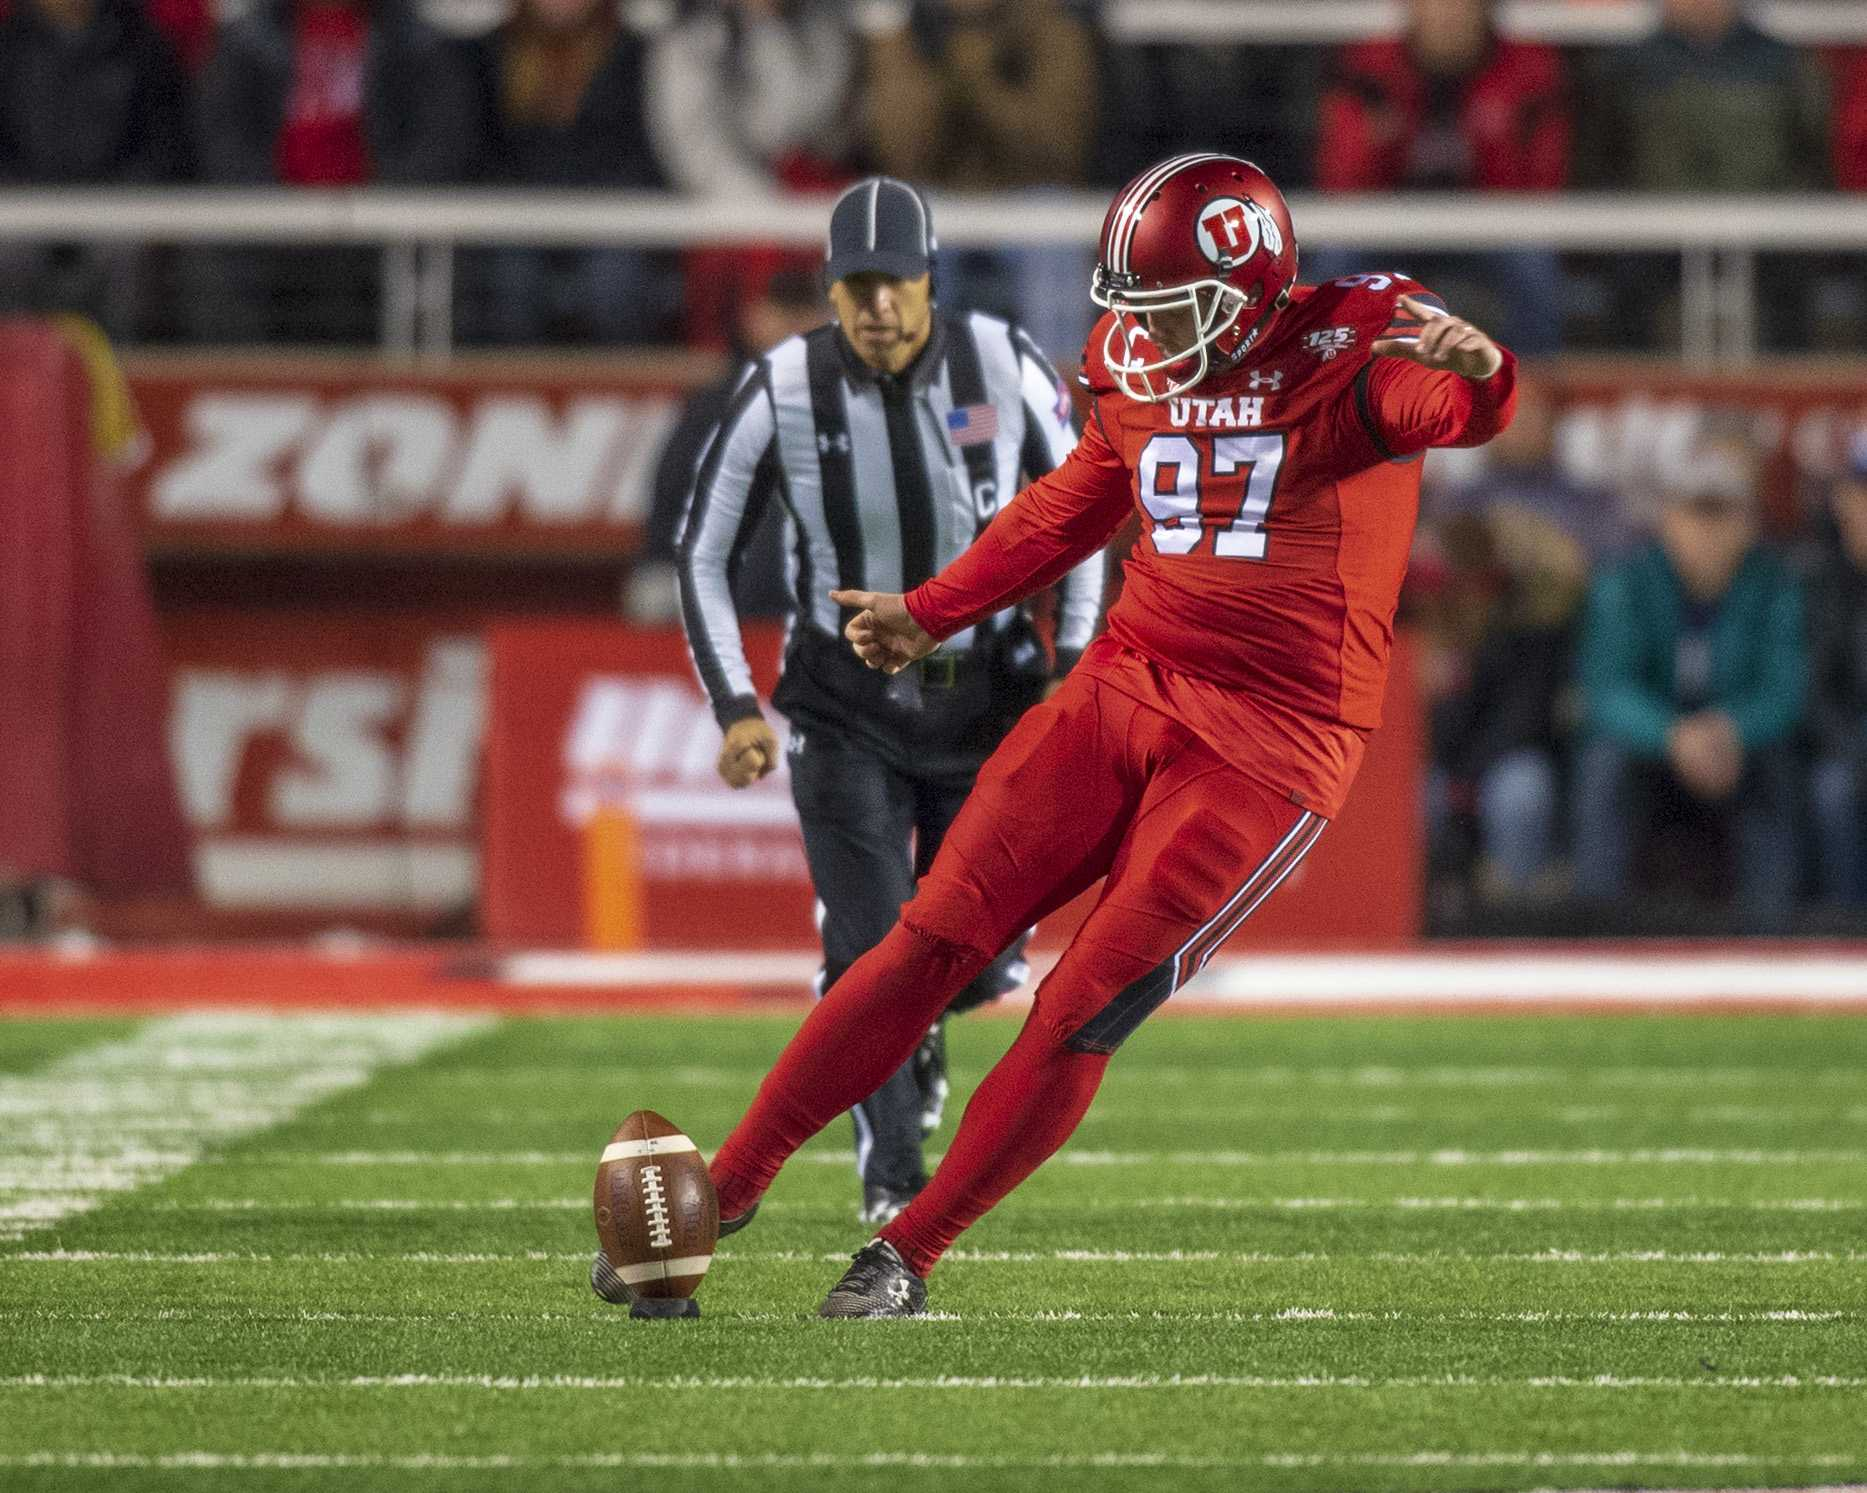 University of Utah senior kicker Matt Gay (97) kicks the ball during an NCAA Football game vs. The Brigham Young University Cougars at Rice Eccles Stadium in Salt Lake City, Utah on Saturday, Nov. 24, 2018. (Photo by Kiffer Creveling | The Daily Utah Chronicle)